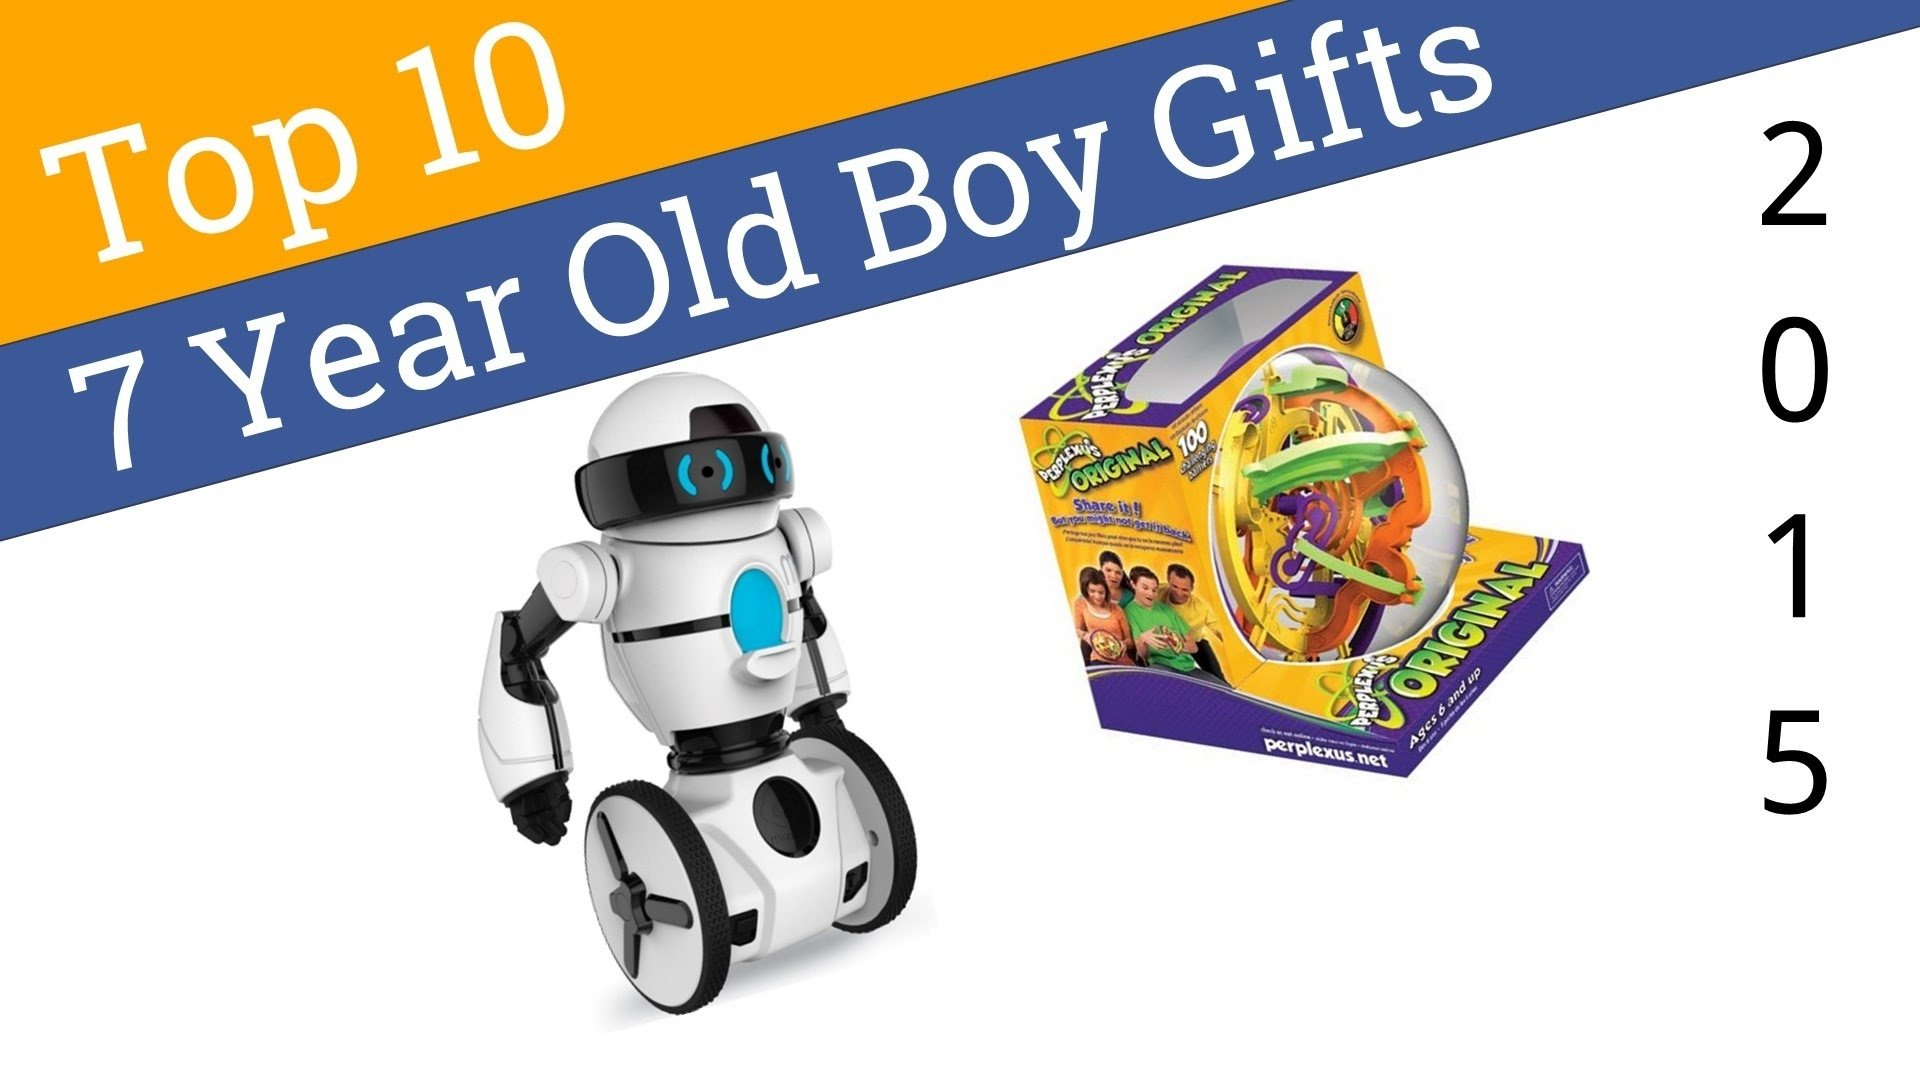 10 Unique Good Gift Ideas For Boys 10 best 7 year old boy gifts 2015 youtube 10 2020